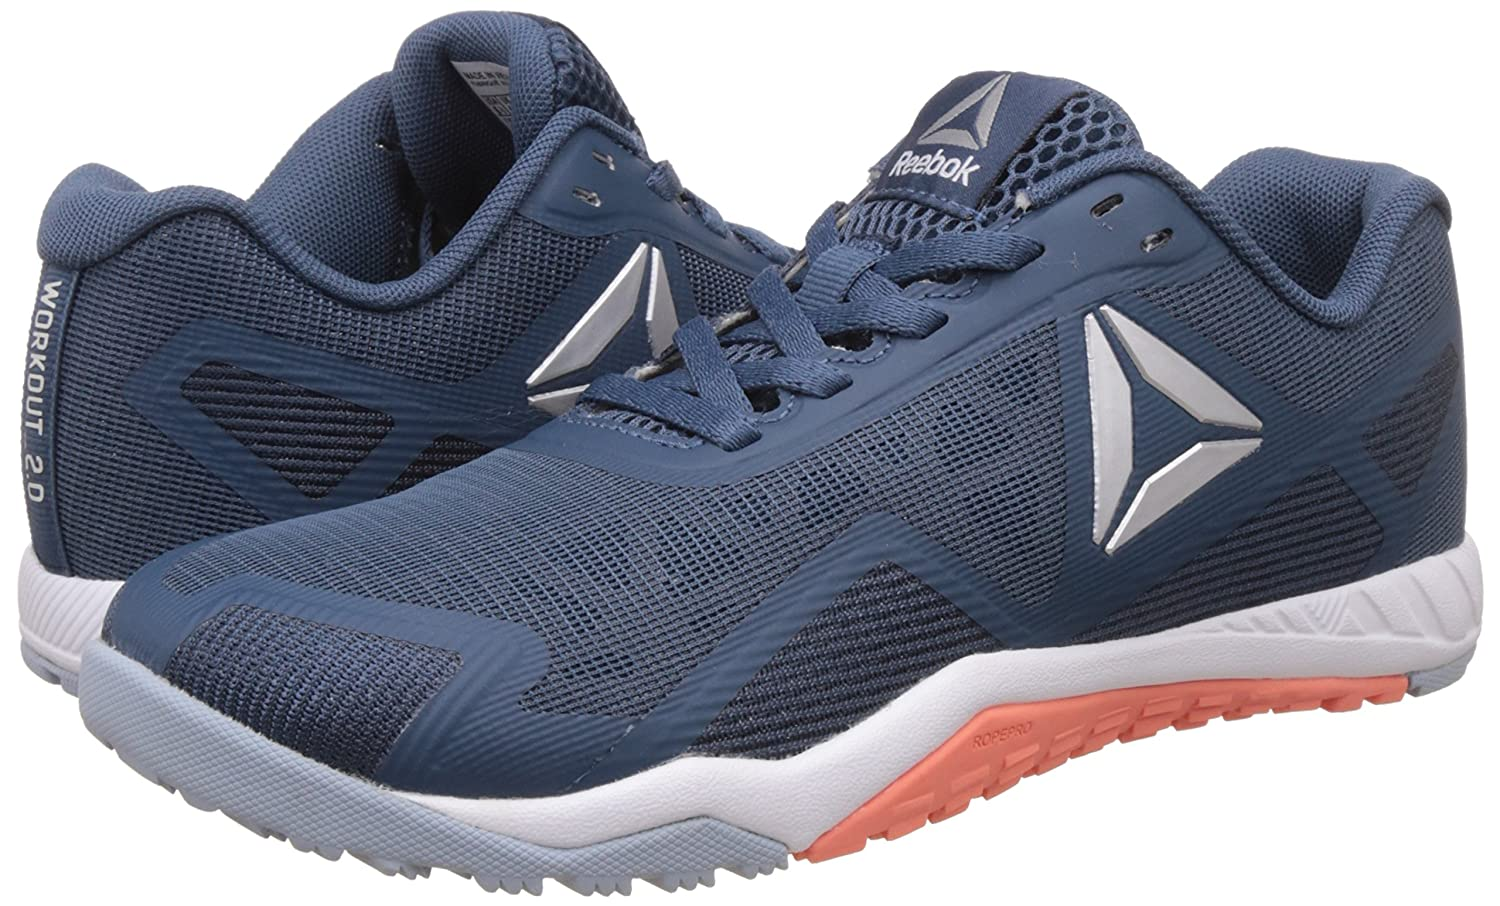 Reebok Women's ROS Workout Tr 2.0 Multisport Training Shoes